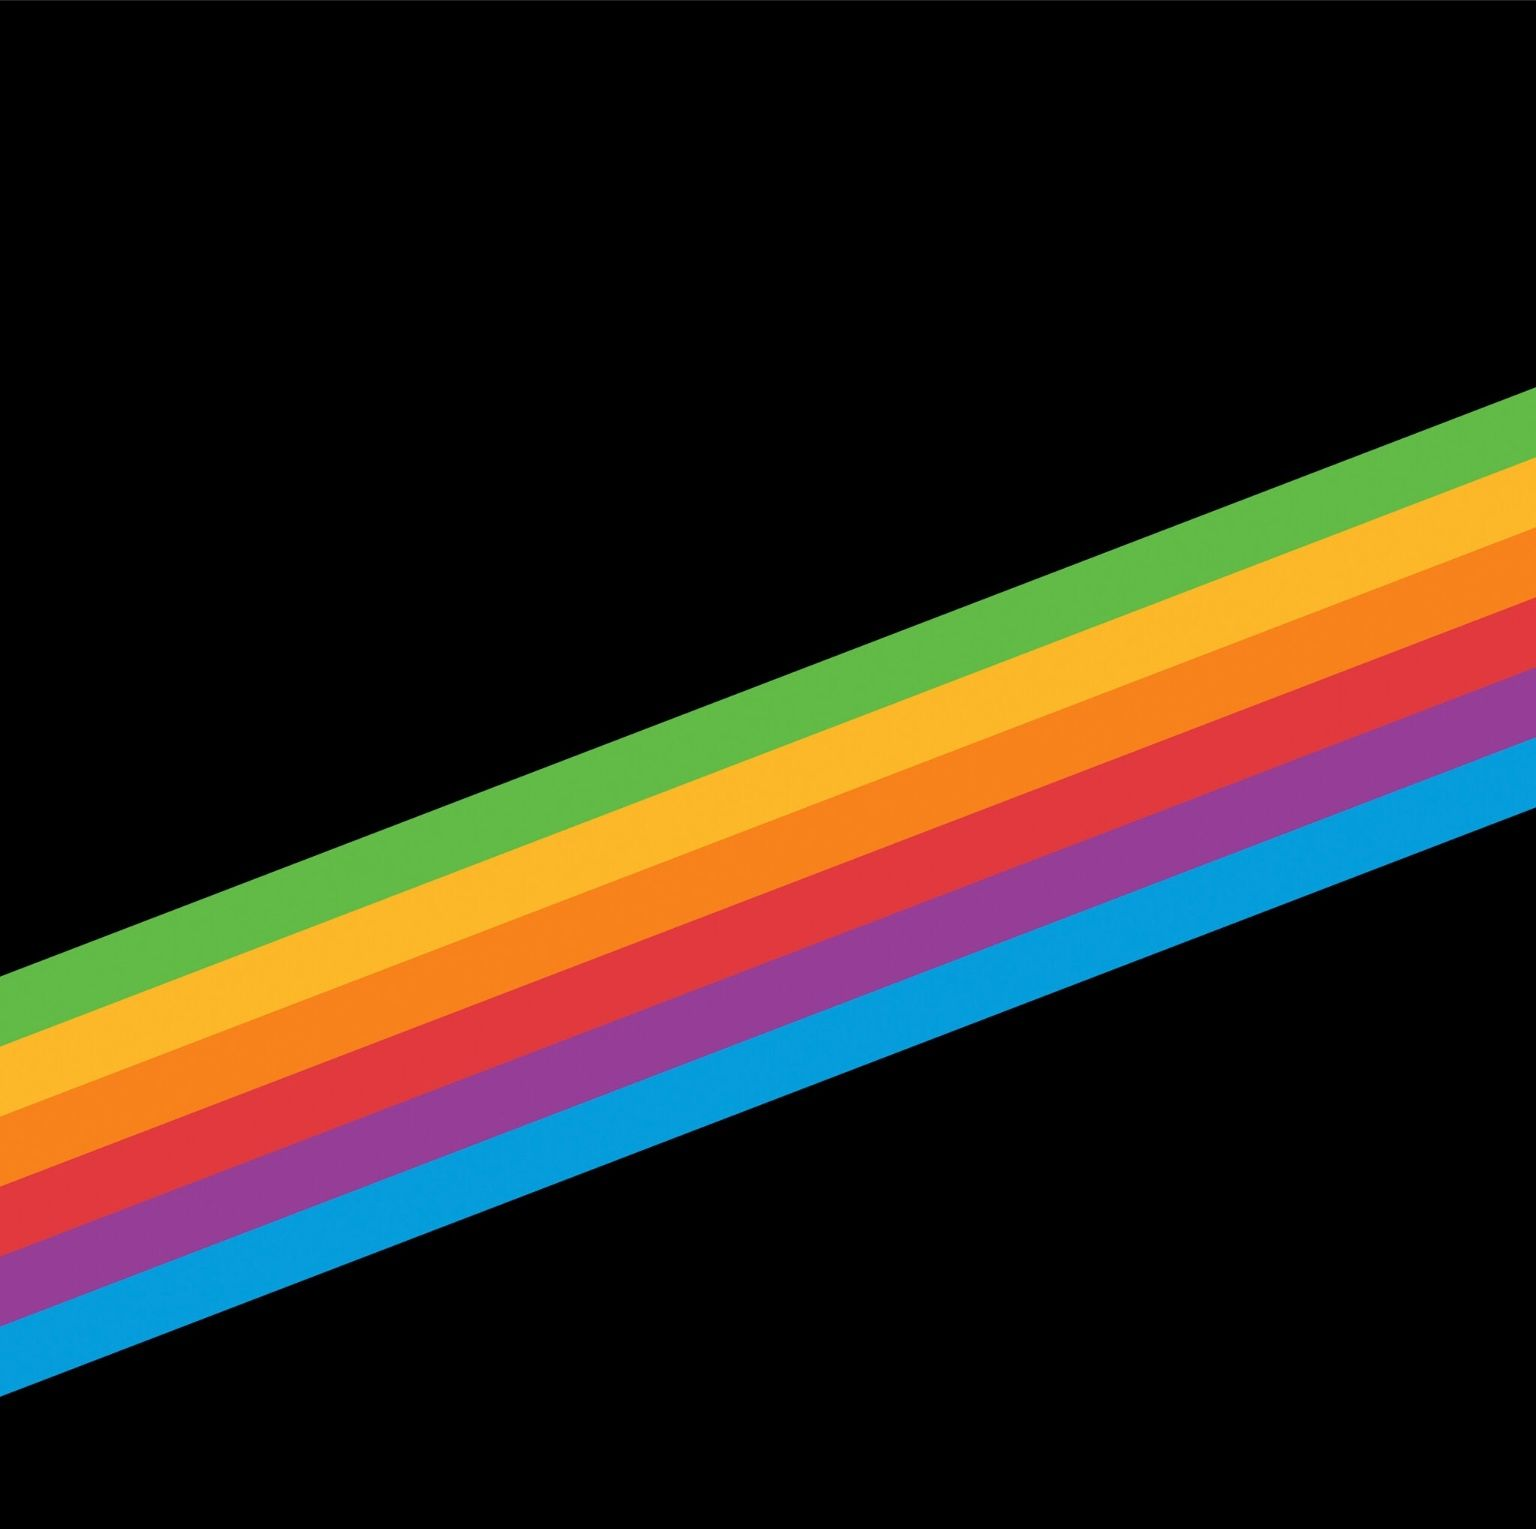 Rainbow OLED Wallpapers   Top Free Rainbow OLED Backgrounds ...